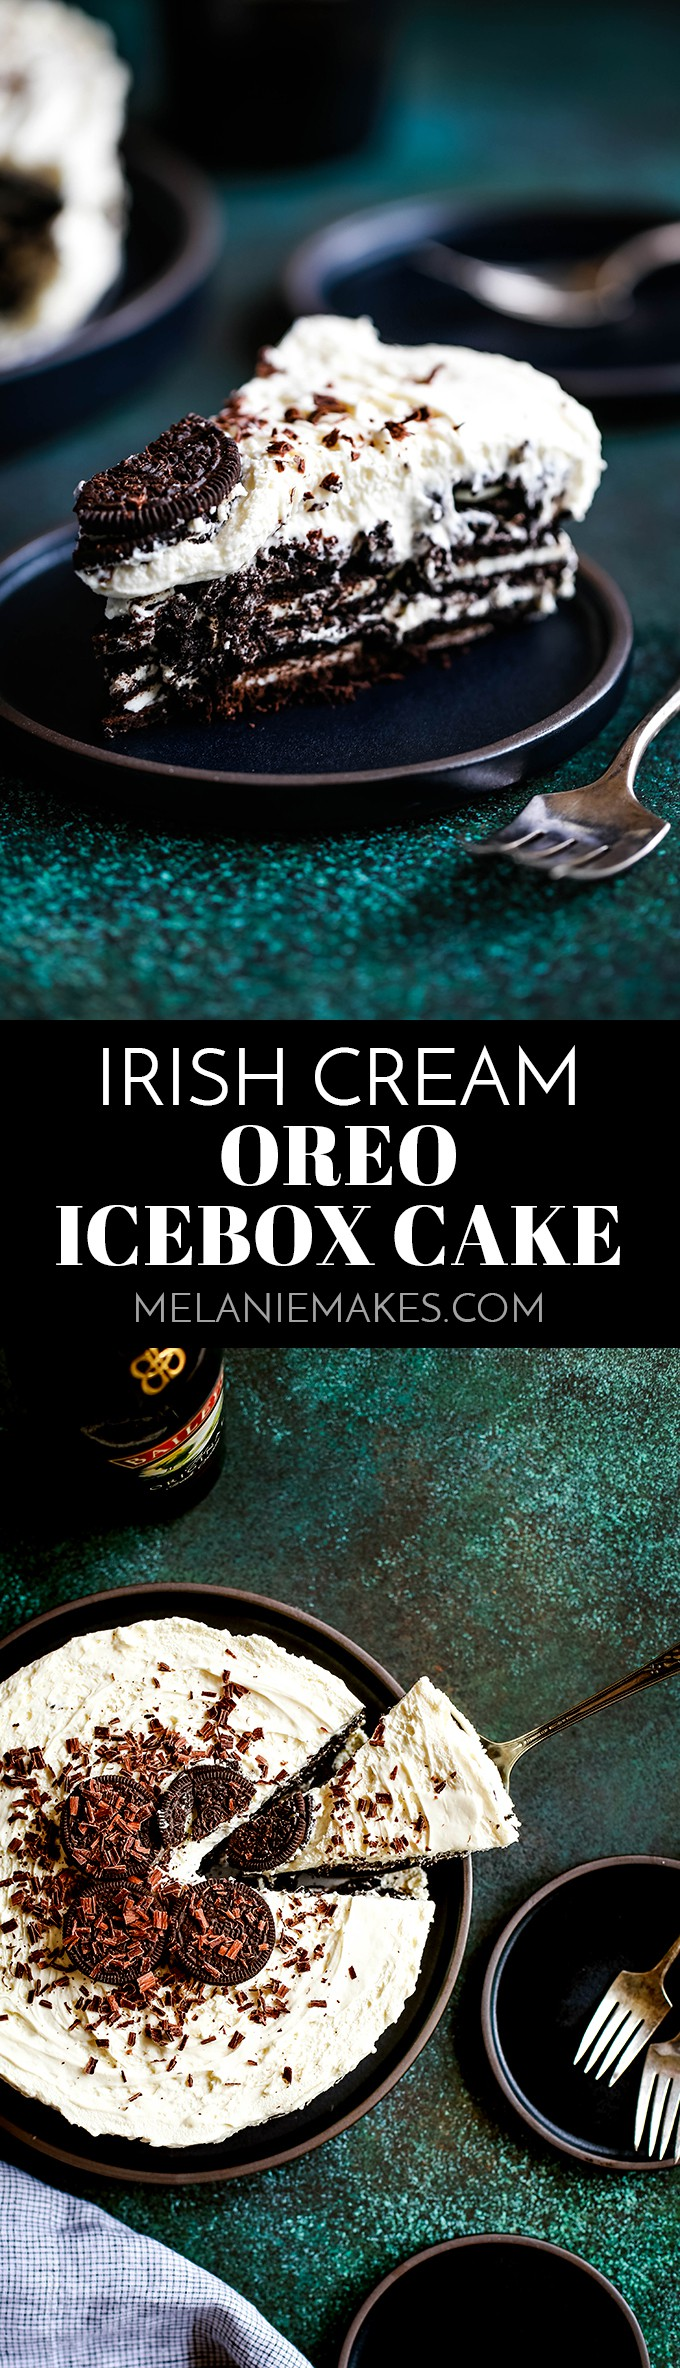 This no bake Irish Cream Oreo Ice Box Cake is likely one of the easiest desserts you'll ever make and absolutely perfect to enjoy for St. Patrick's Day. #irish #oreo #cake #nobake #whippedcream #easyrecipe #stpatricksday